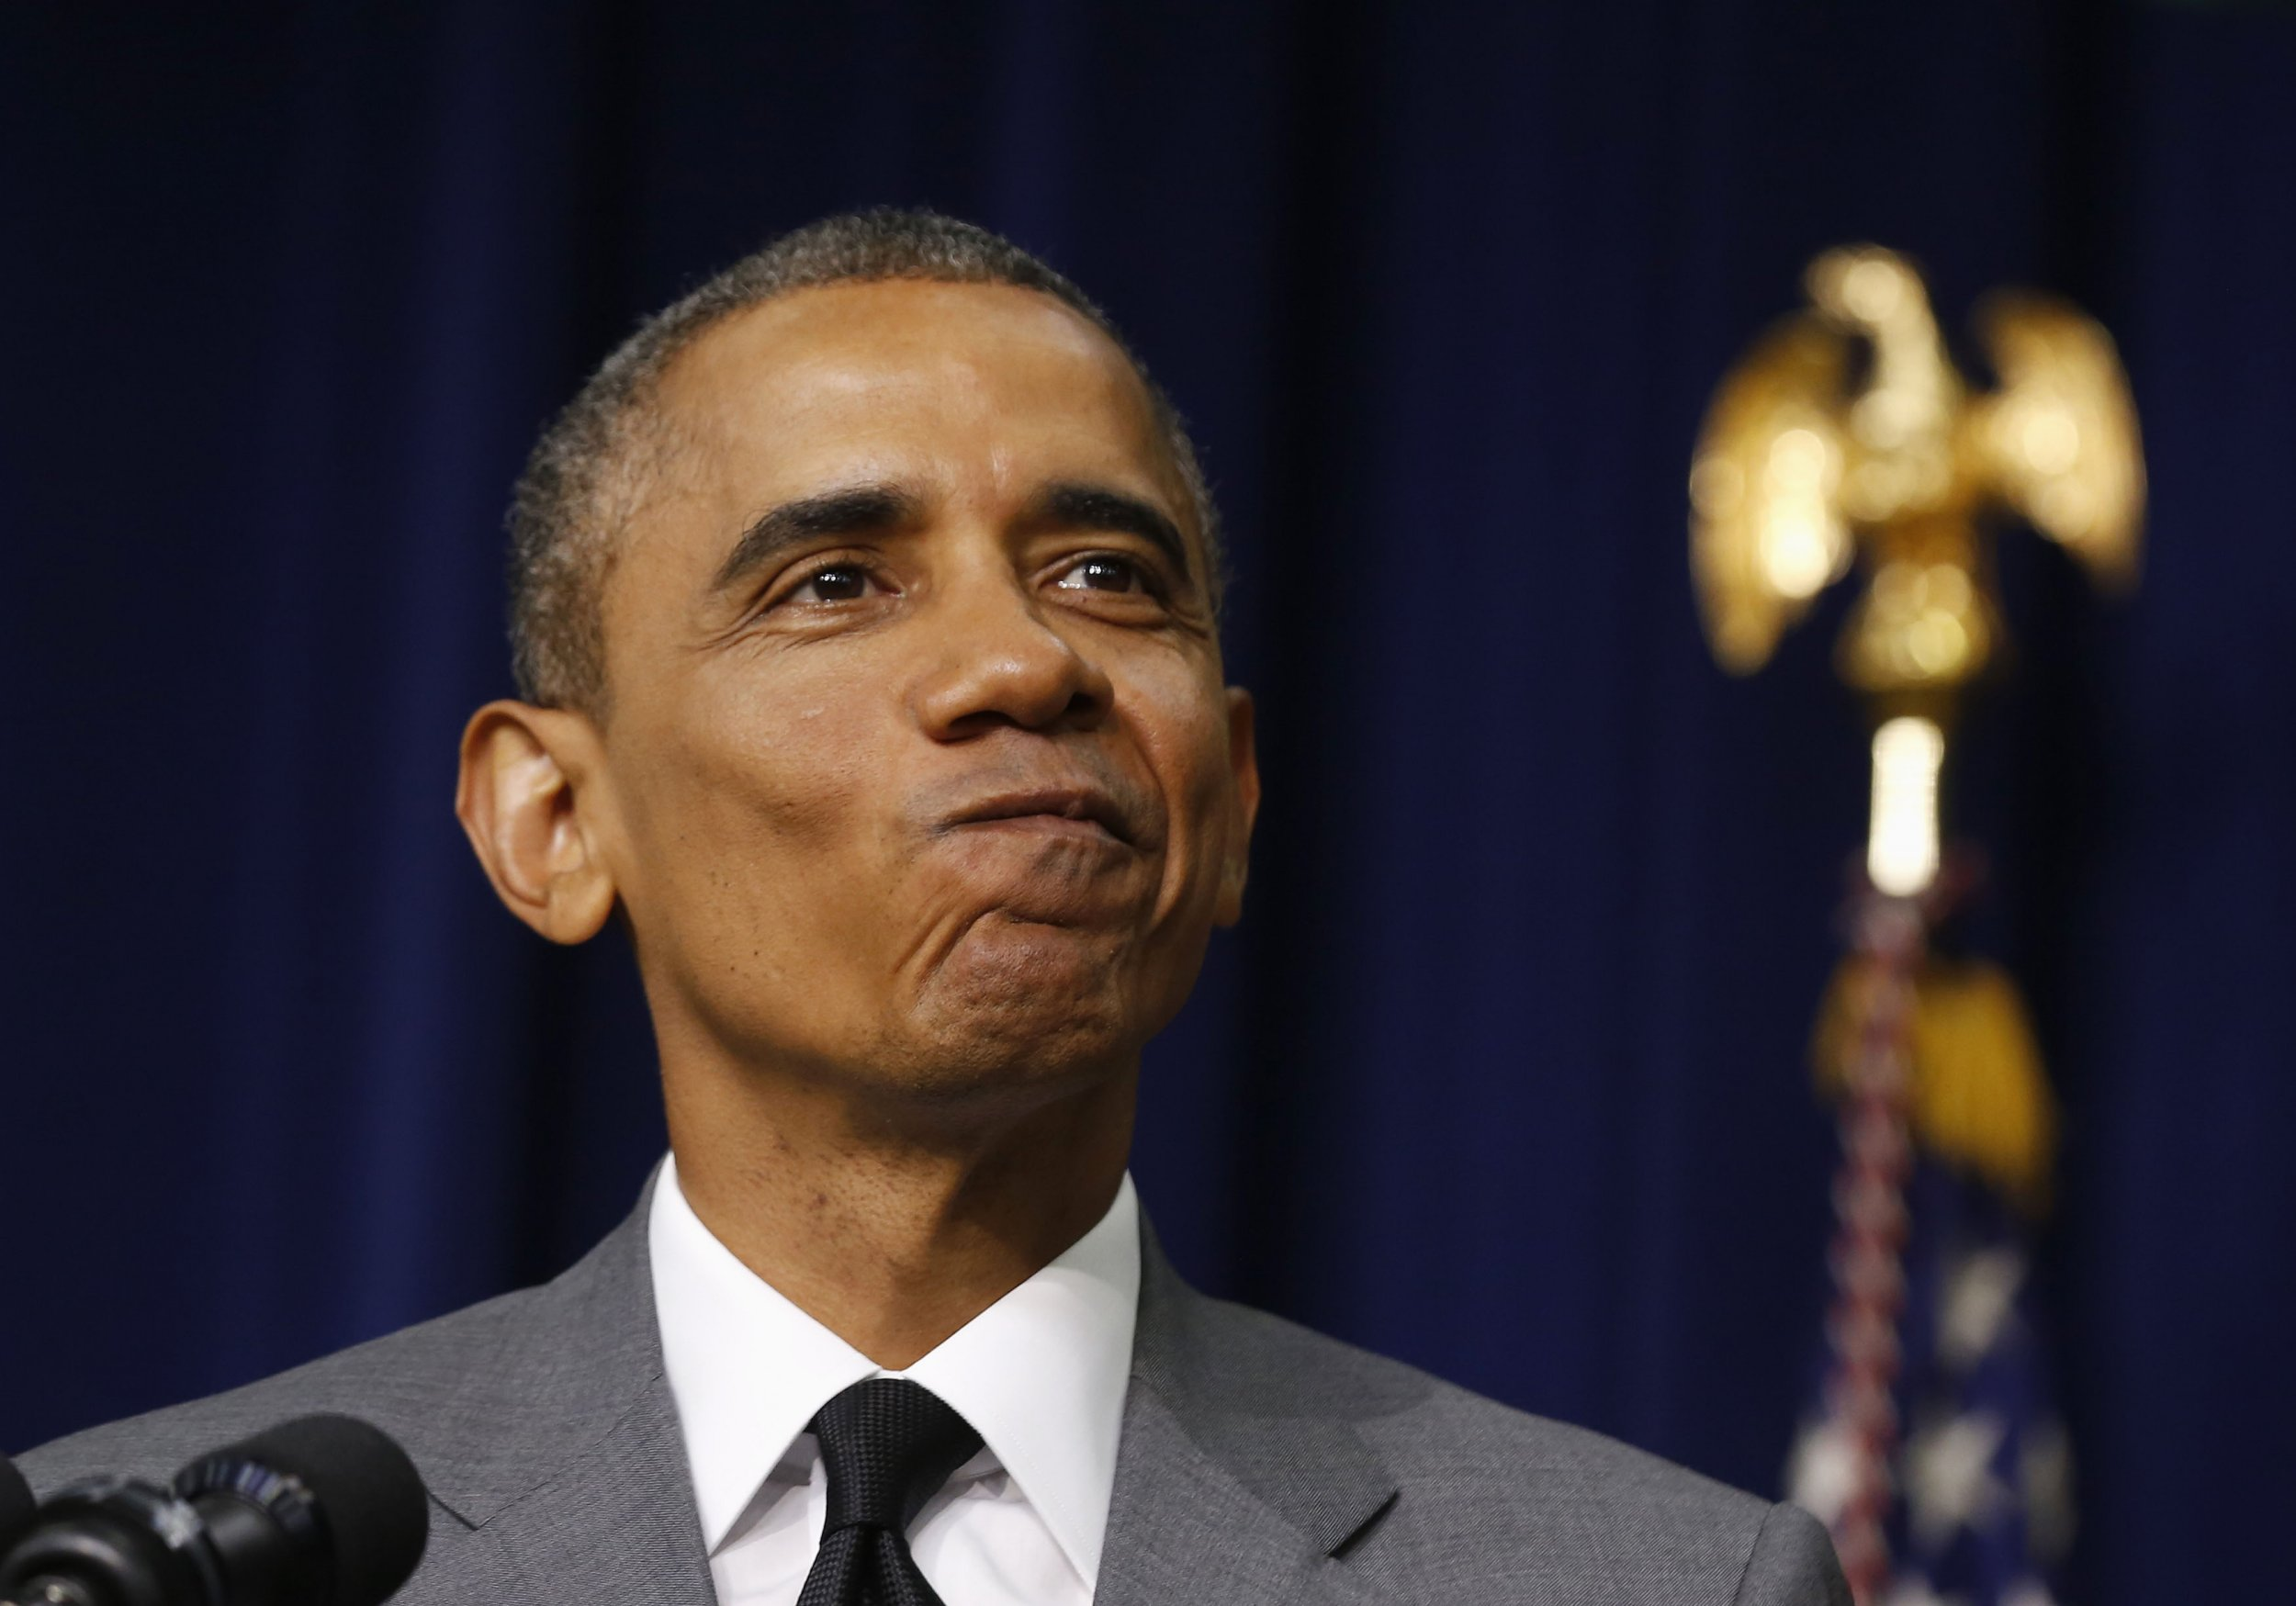 Why It's Already Legal for Obama to Take On Climate Change Without Congress